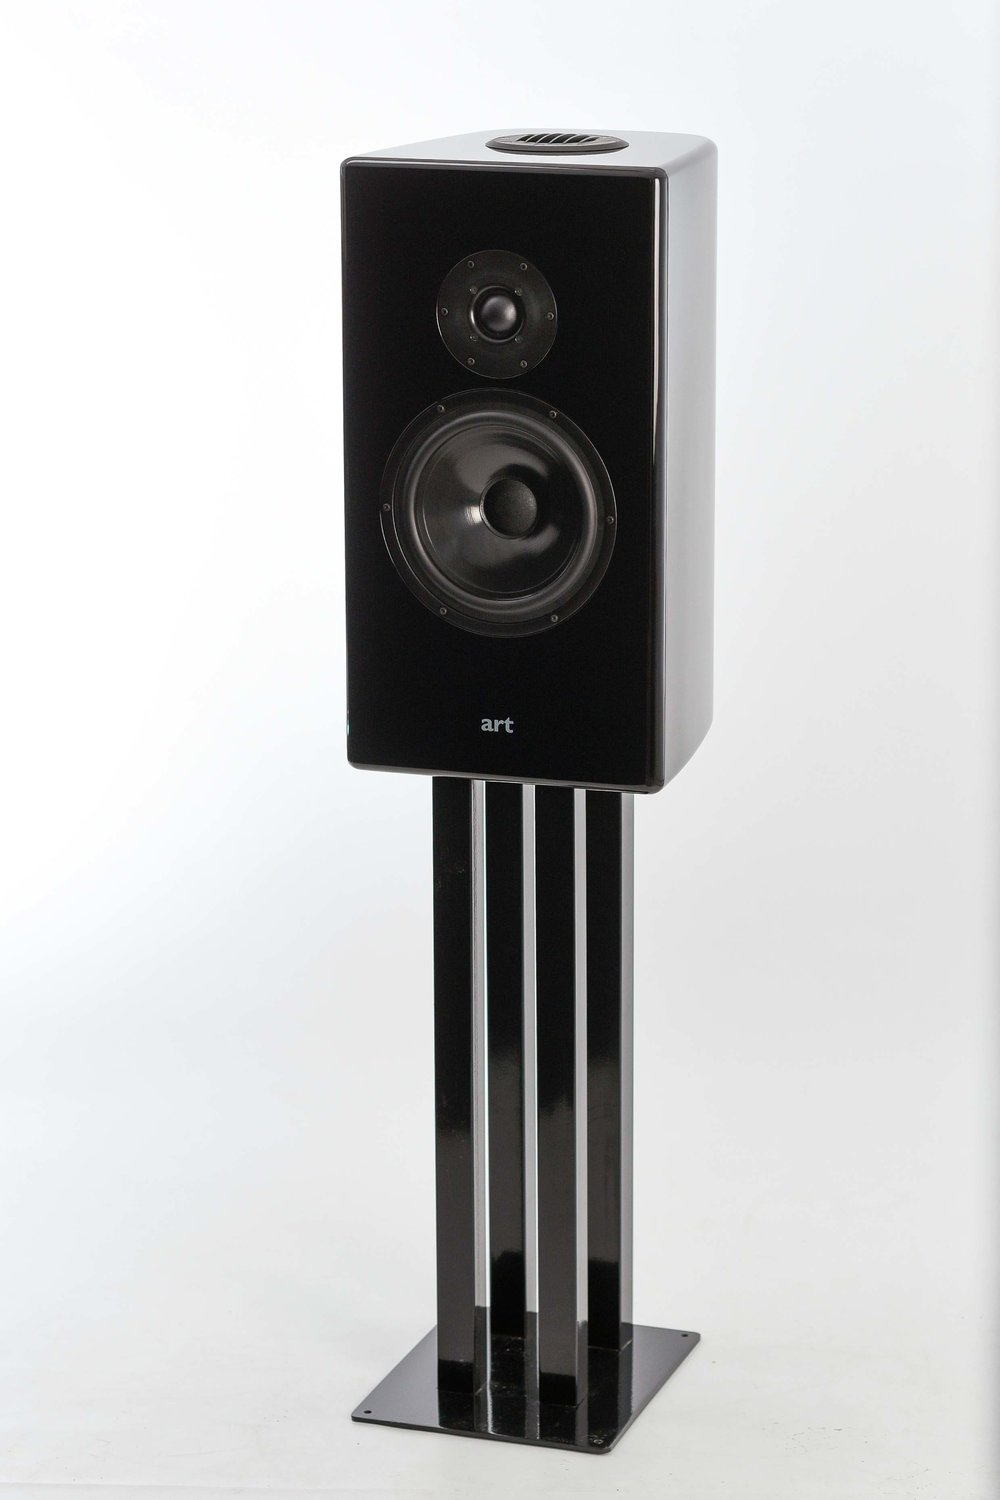 <b>ART DRAM Alnico Tweeter Monitor Speakers</b>